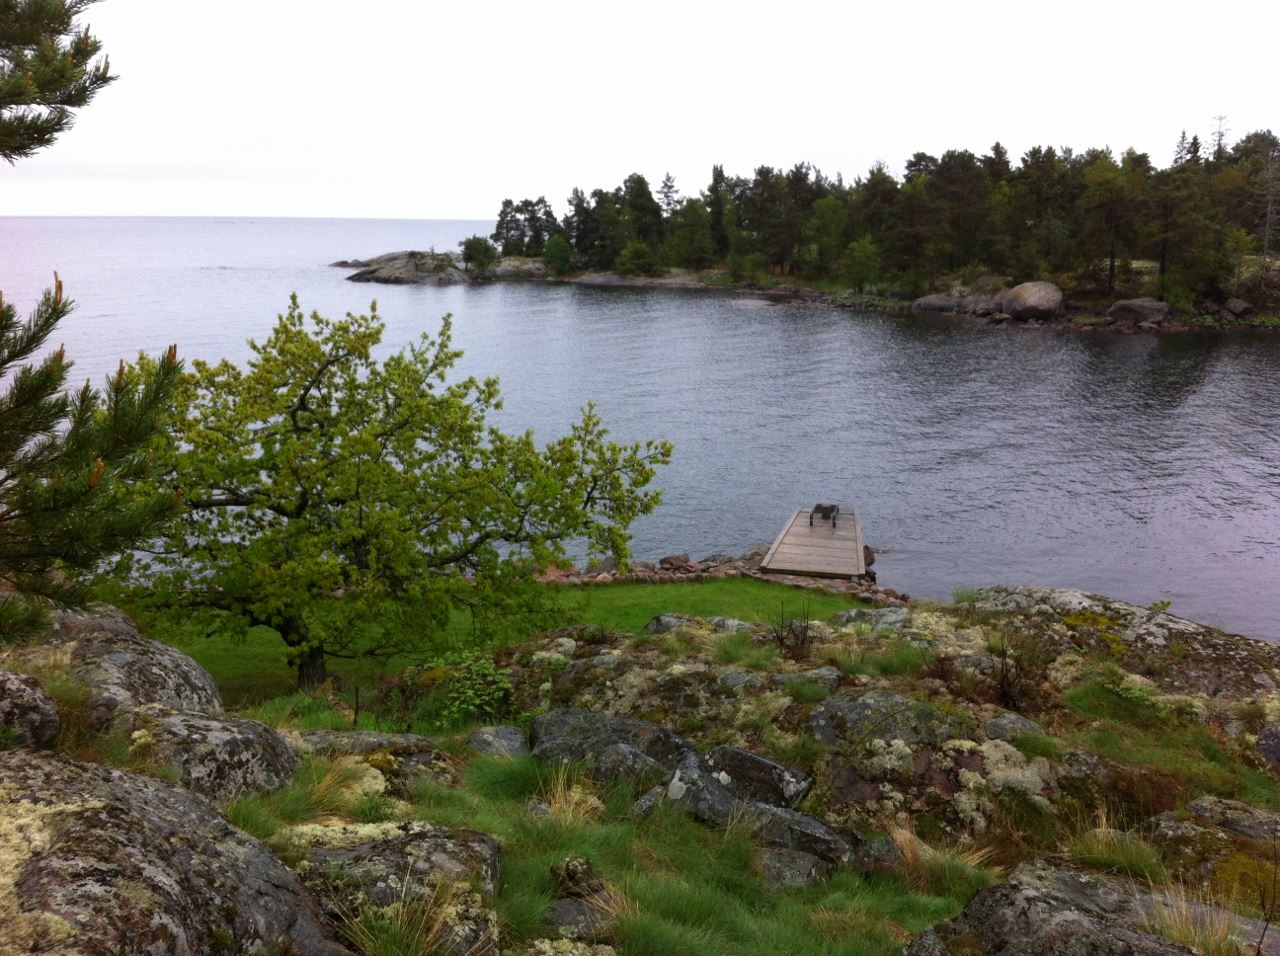 Idyllic summer spot north of Oskarshamn